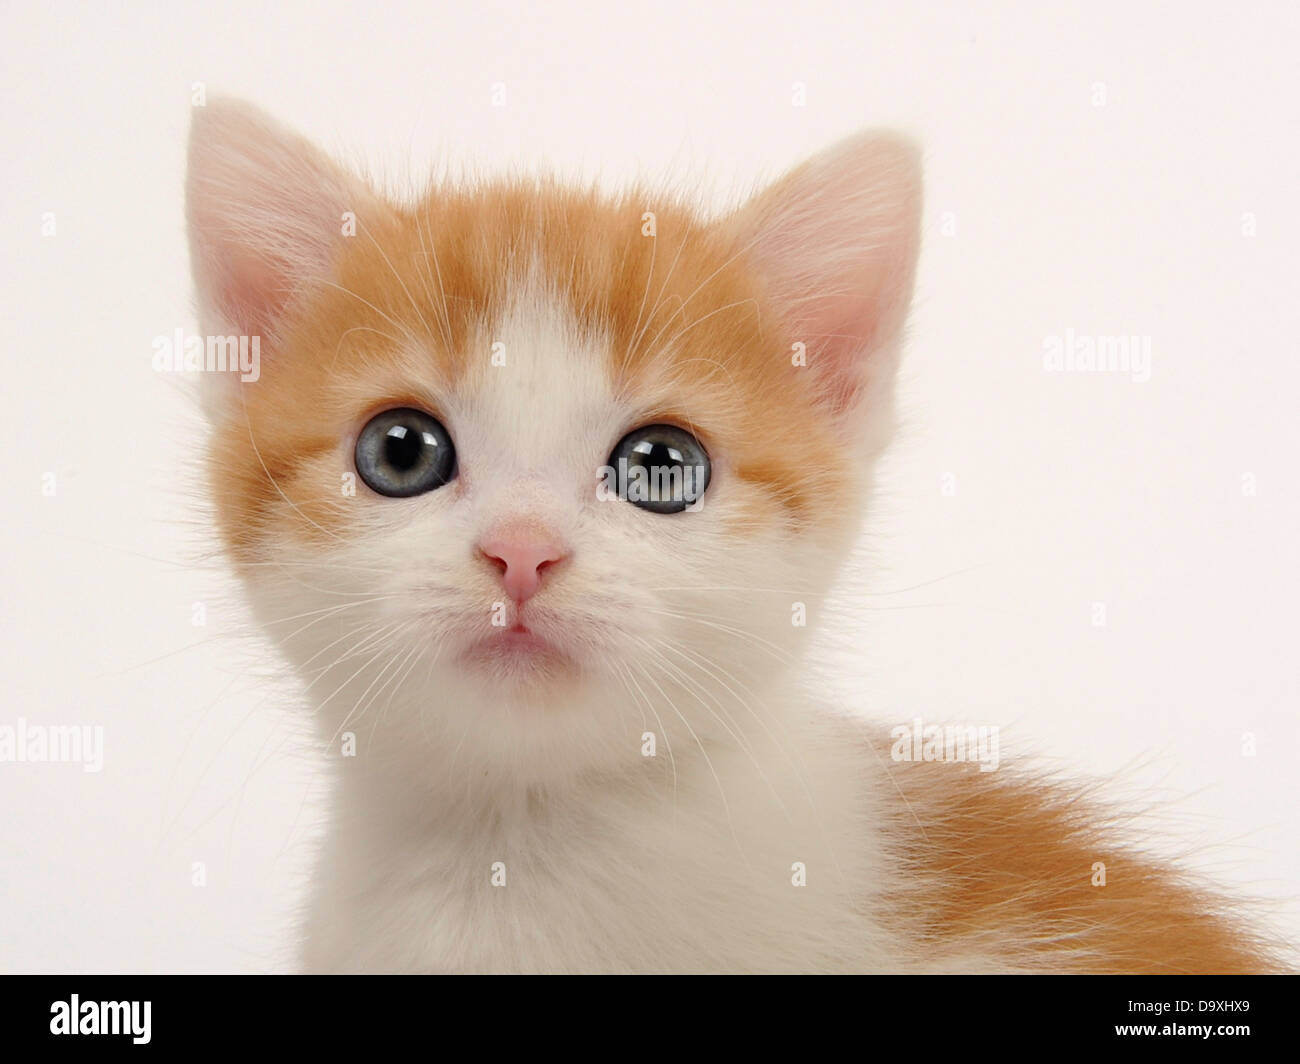 Very Cute White Kittens Images